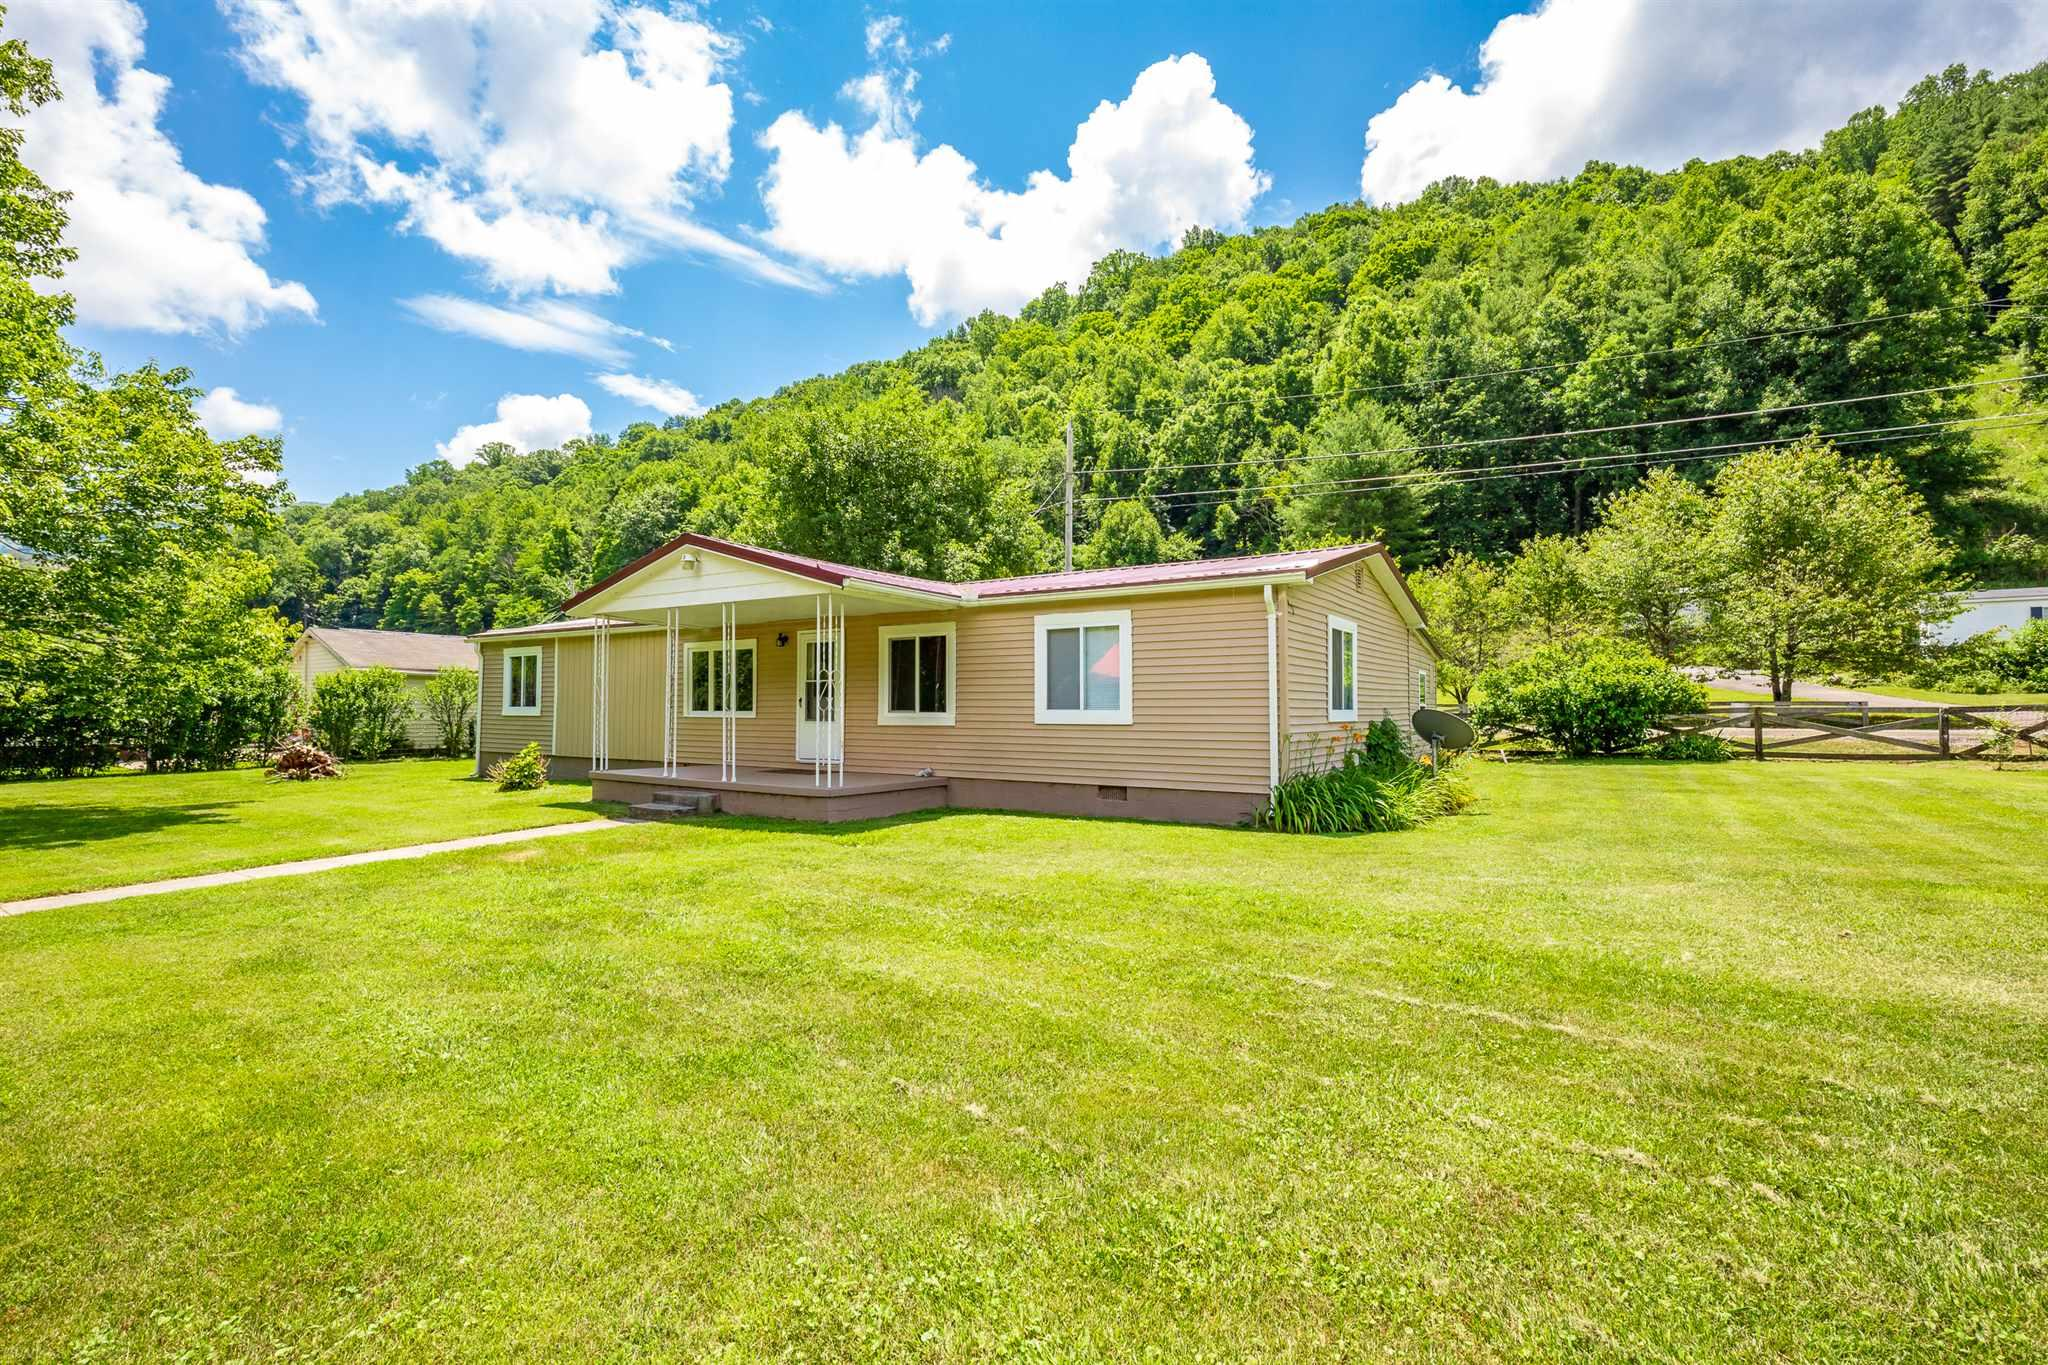 3BR 2 BA Doublewide on a permanent foundation in Rocky Gap, VA. This mostly remodeled home sits on 2 level lots with a commercial size garage (220 elec.), small storage building, and a larger storage building with a root cellar. Paved driveway with a triple carport, and LOTS of upgrades. New metal roof approx. 2 yrs old, new gutters, new deck, some fresh paint, new French doors, new front door, new picture window, some new interior doors, and all remodeled rooms were upgraded with sheetrock. Heat pump/central air, and a new fireplace with gas log insert. This is a must see and overlooks Wolf Creek. Includes apple, pear, and cherry trees, in a quiet neighborhood, extra parking, just 1 mile off of I-77 and approx. 13 miles to Princeton or Bluefield. Conventional financing or cash only.